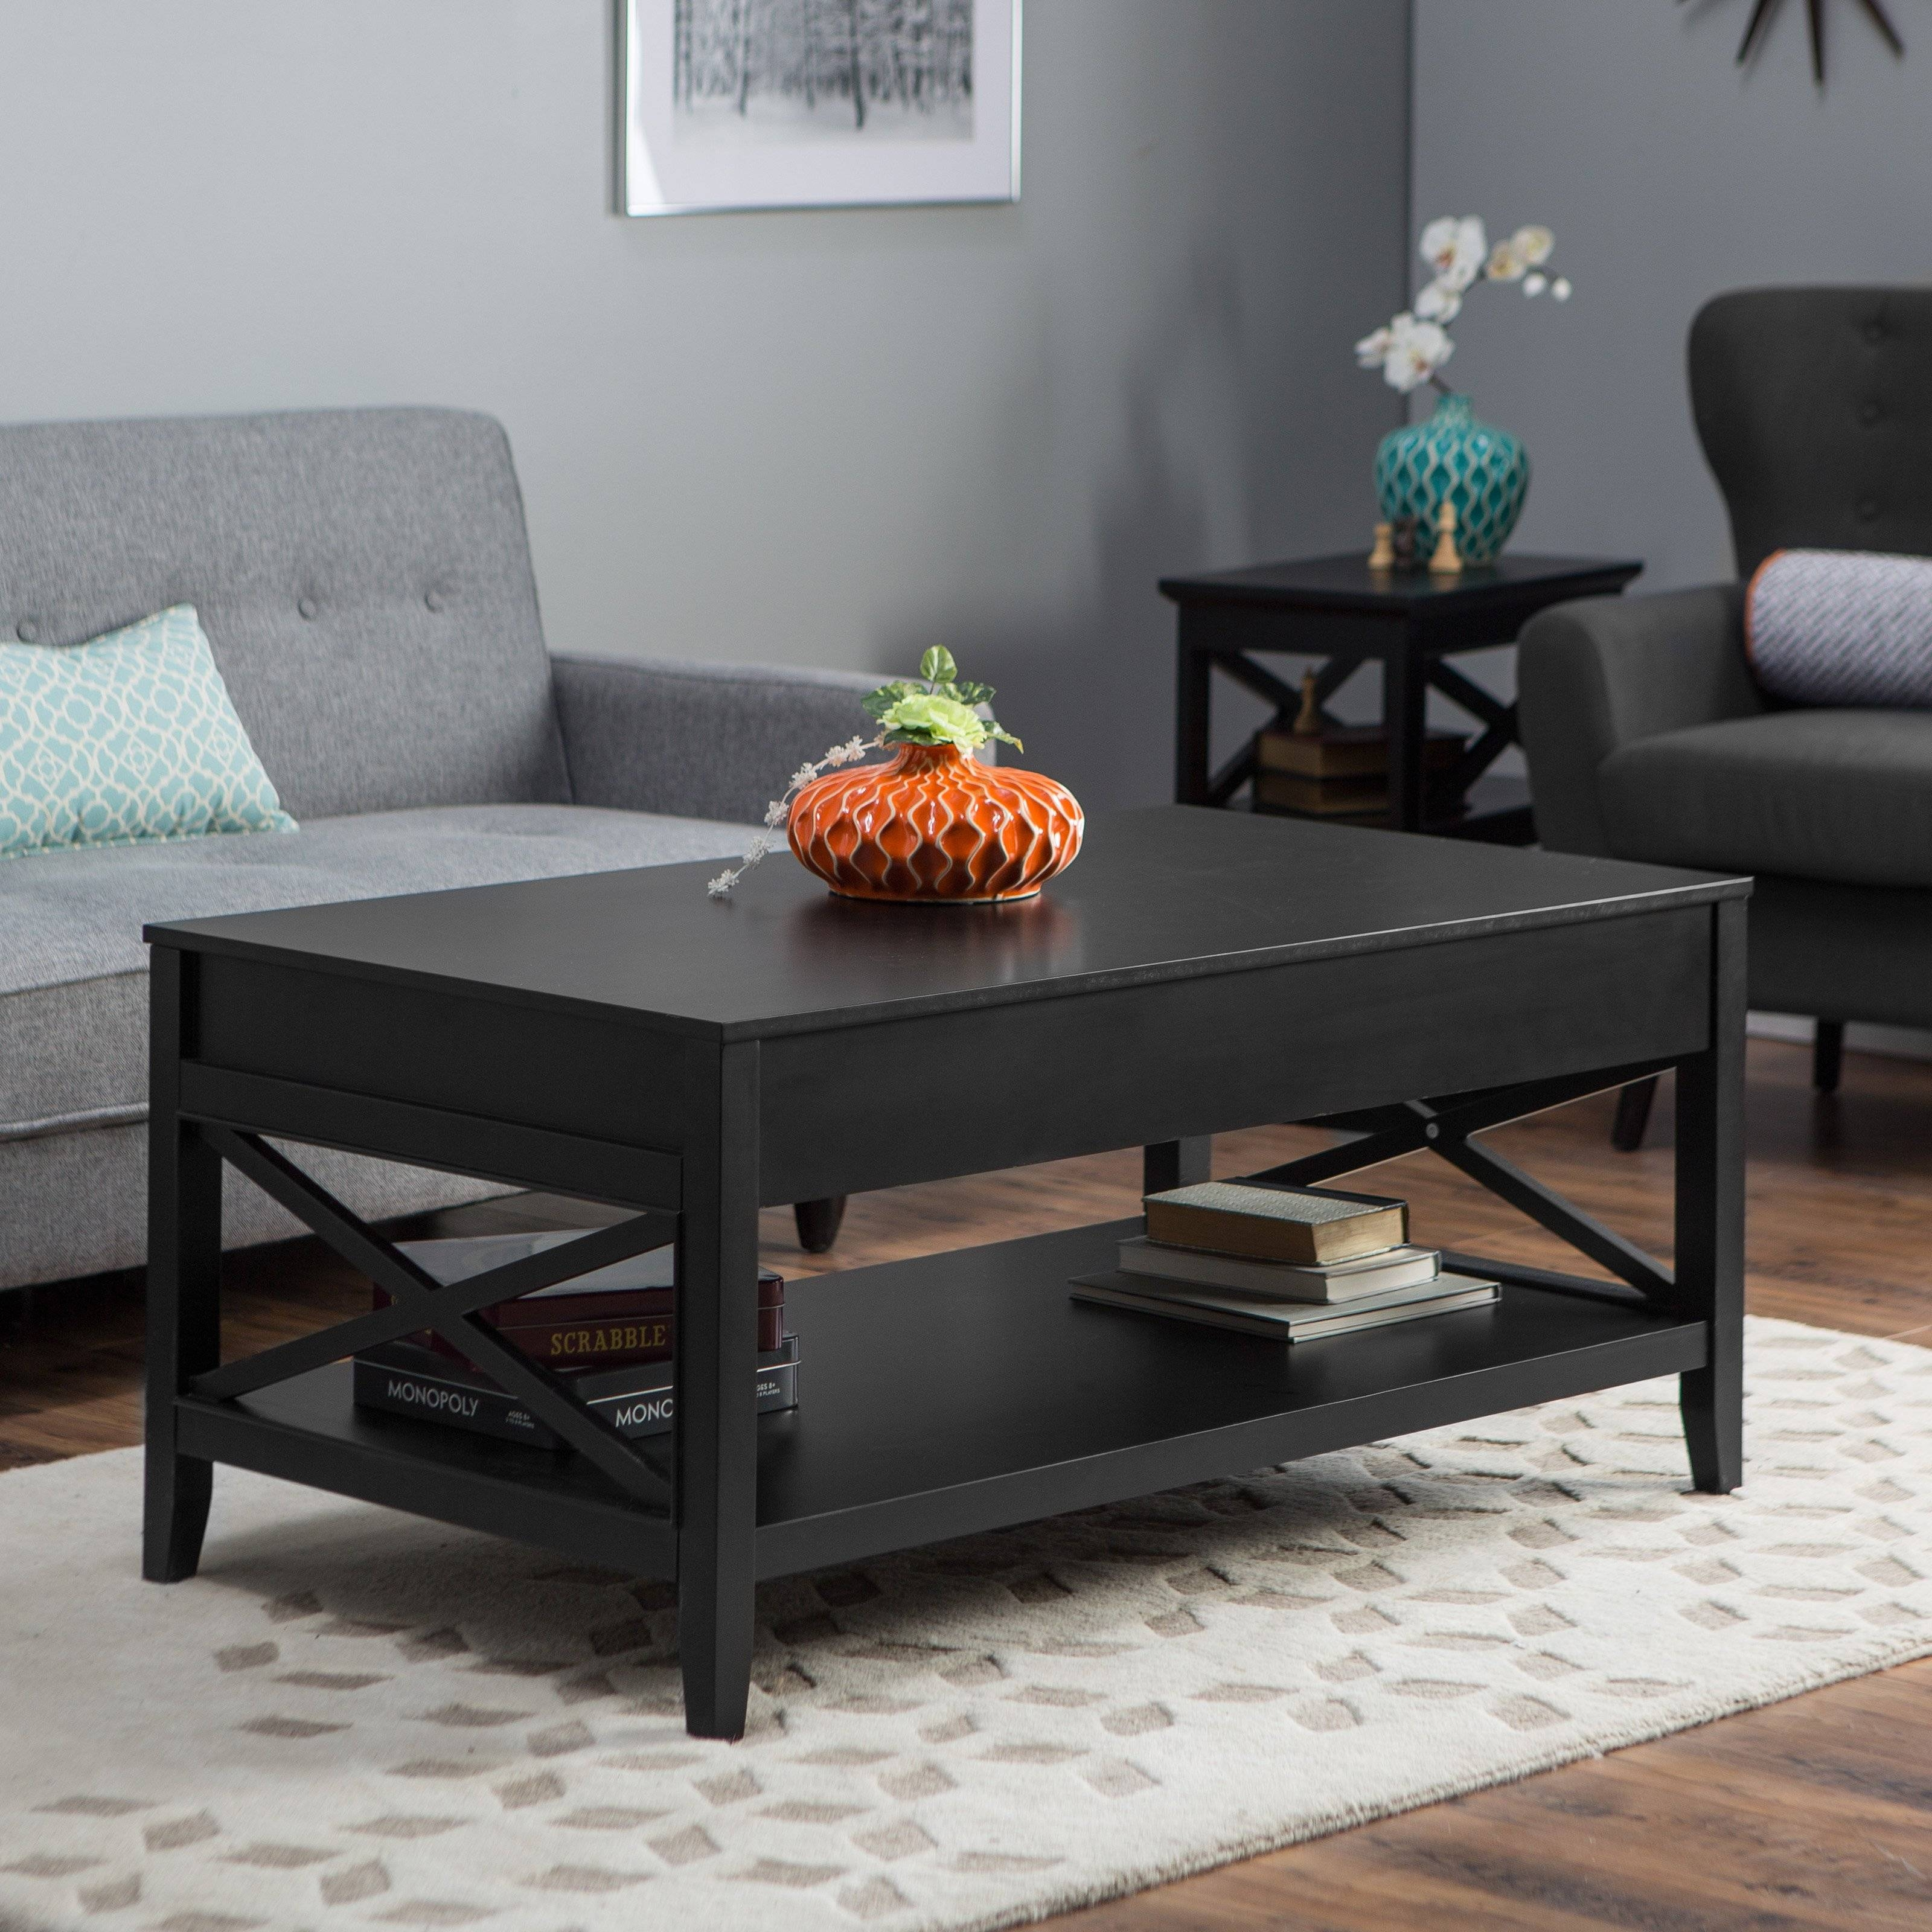 Belham Living Hampton Storage And Lift Top Coffee Table | Hayneedle within Lift Coffee Tables (Image 3 of 30)